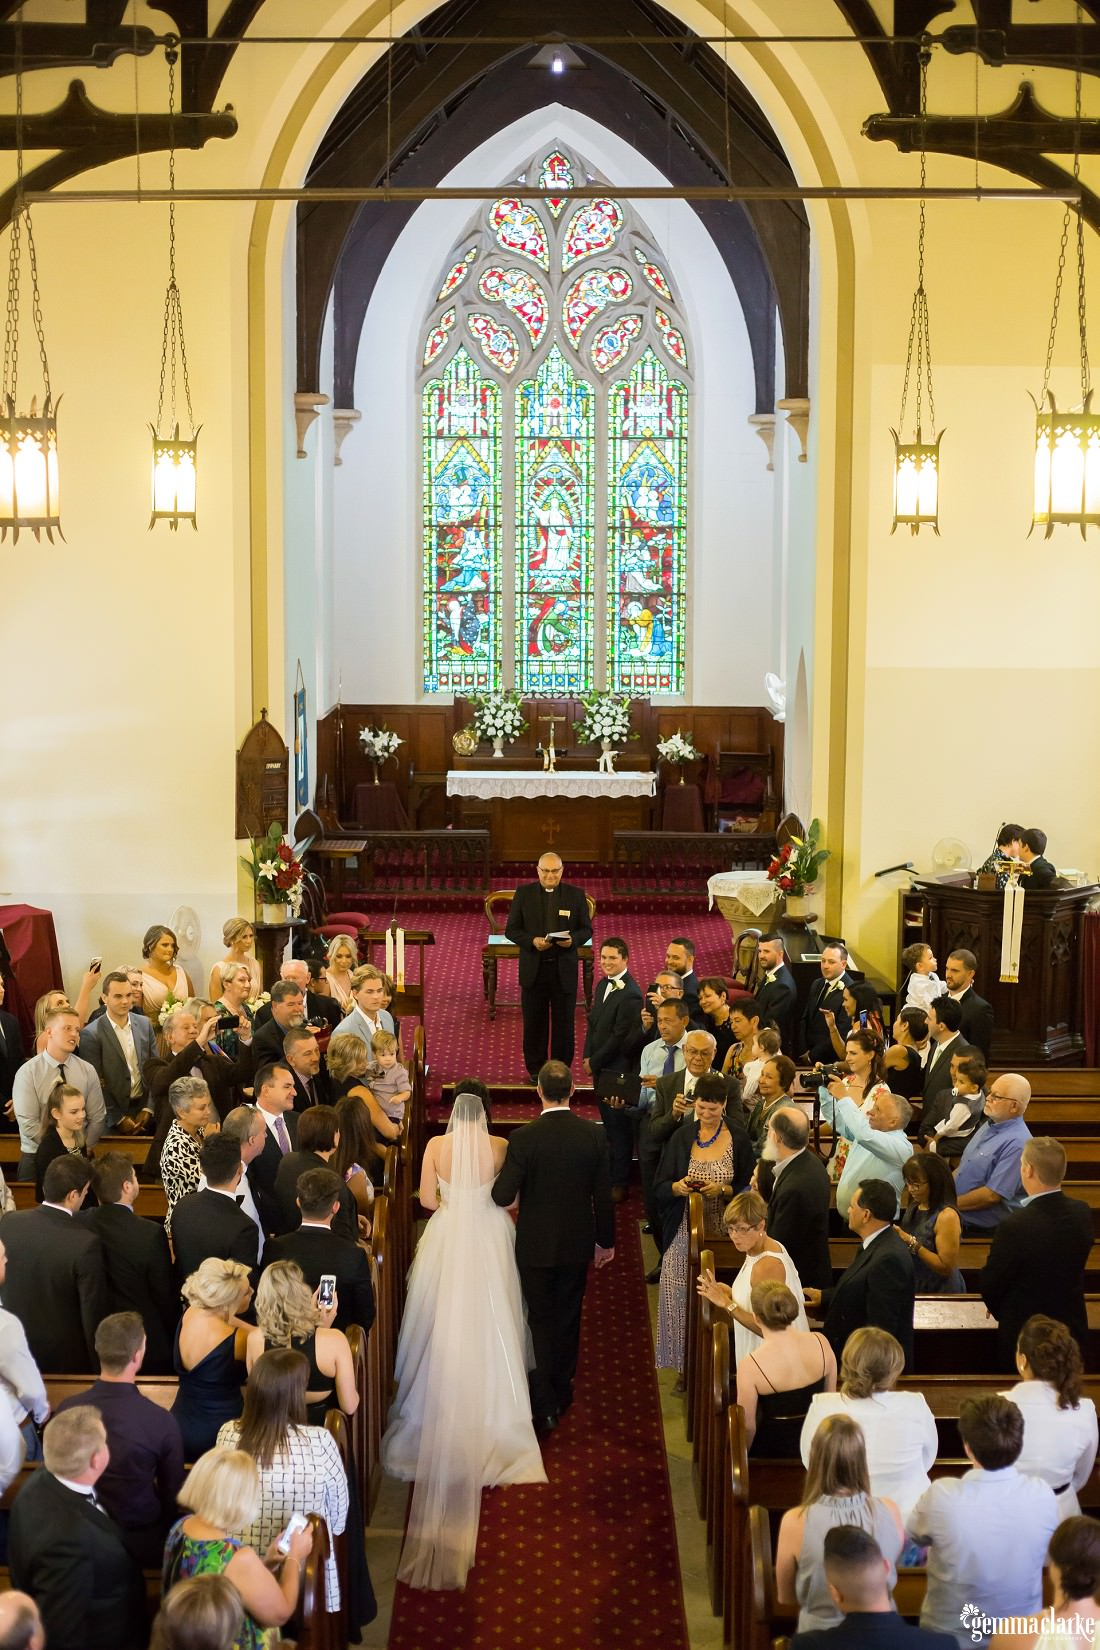 An overhead shot of a bride being walked down the aisle of a church by her father as her groom waits at the altar